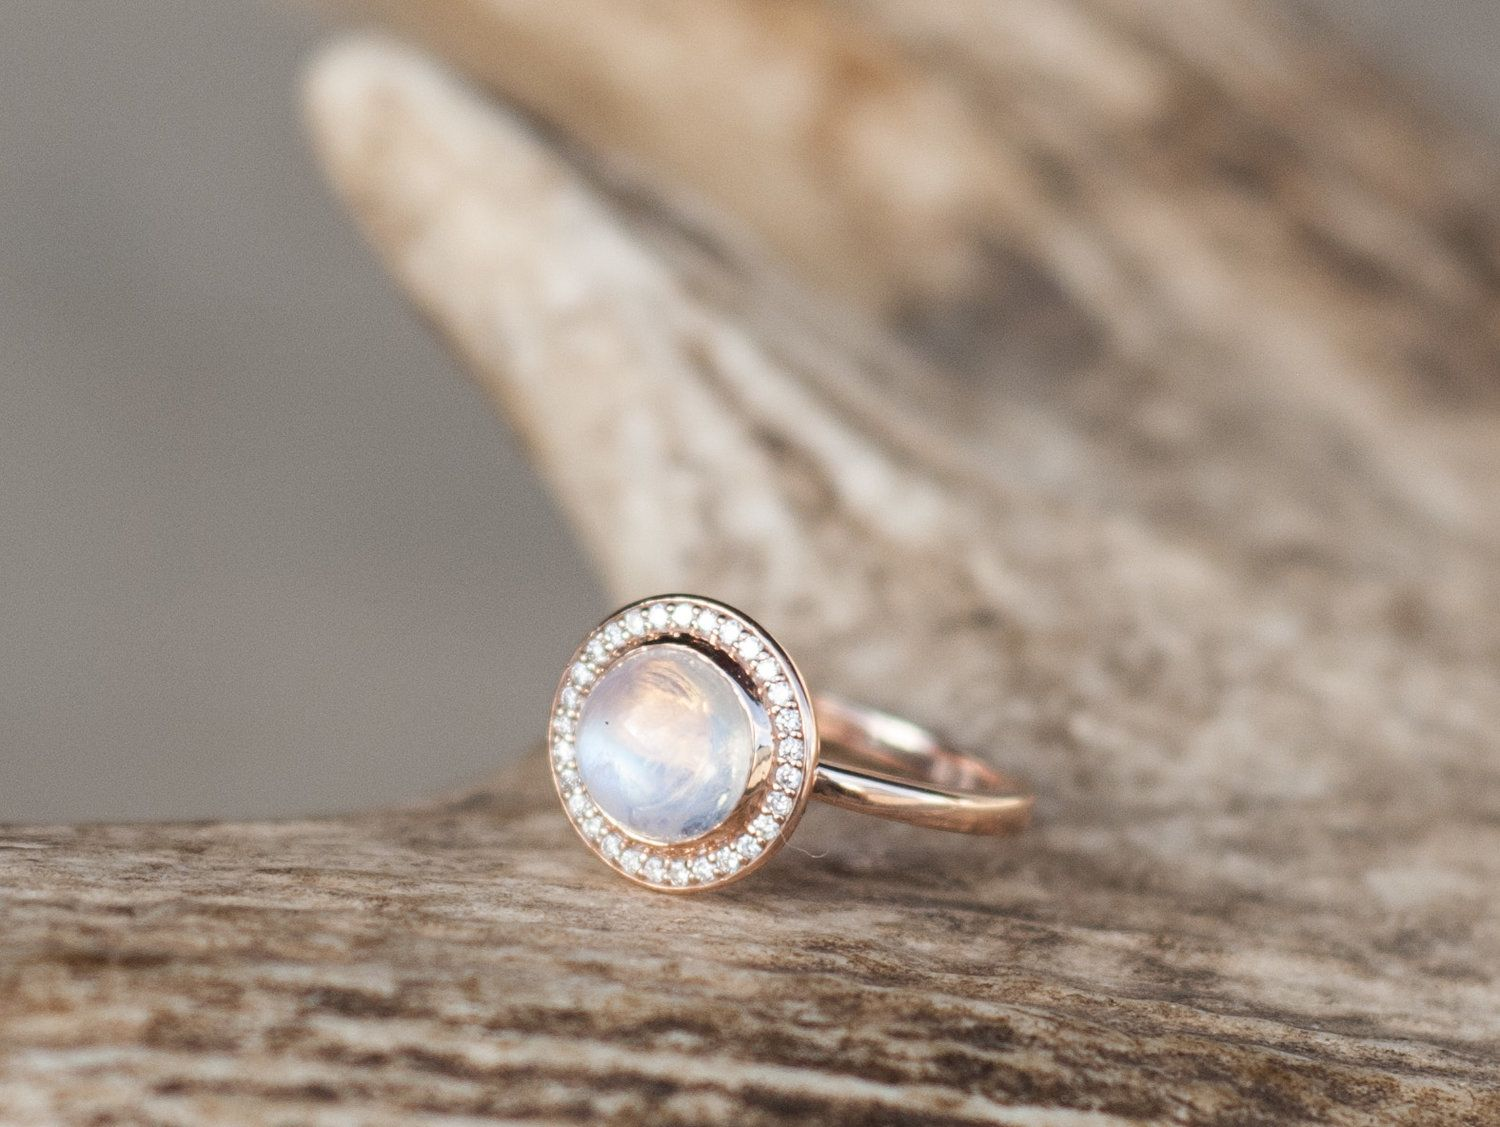 moonstone wedding ring sets 14K GOLD MOONSTONE DIAMOND HALO ENGAGEMENT RING available in 14k rose white or yellow gold